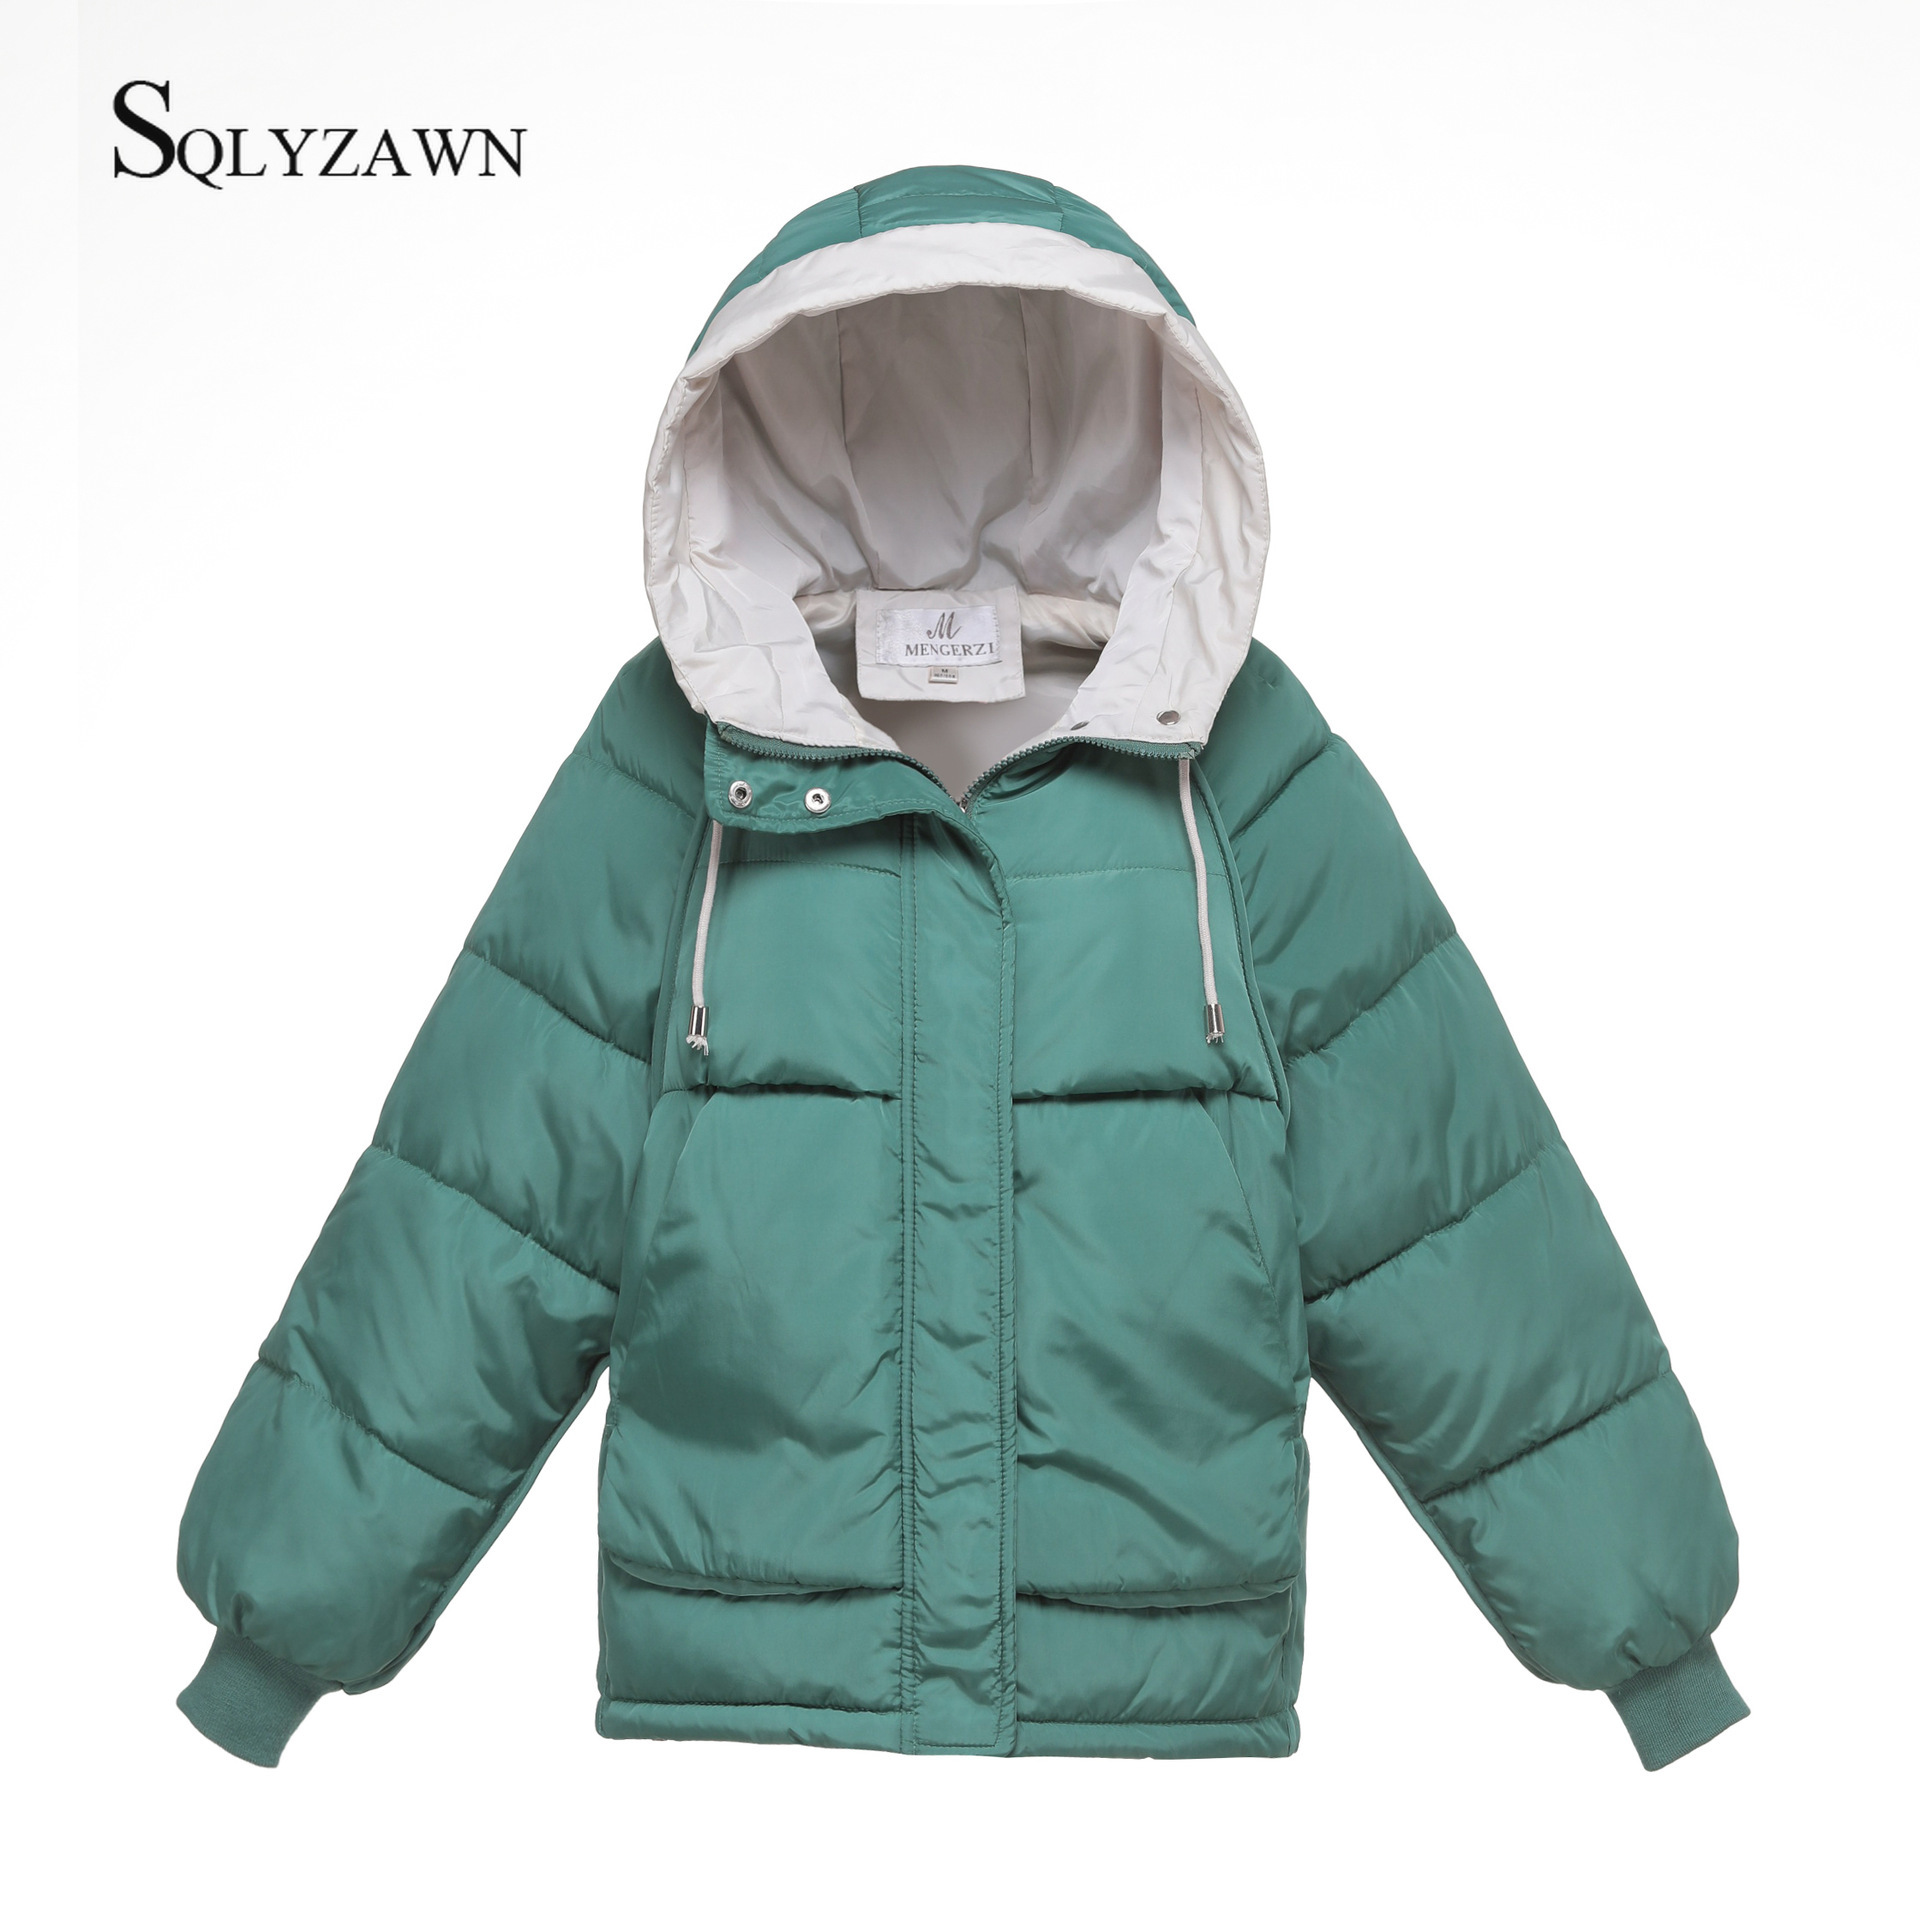 Autumn Winter Warm Zipper Thick Coats Women Jackets Fashion Hooded Casual Solid Cotton-padded Parka Female Outerwear Coats 3XL